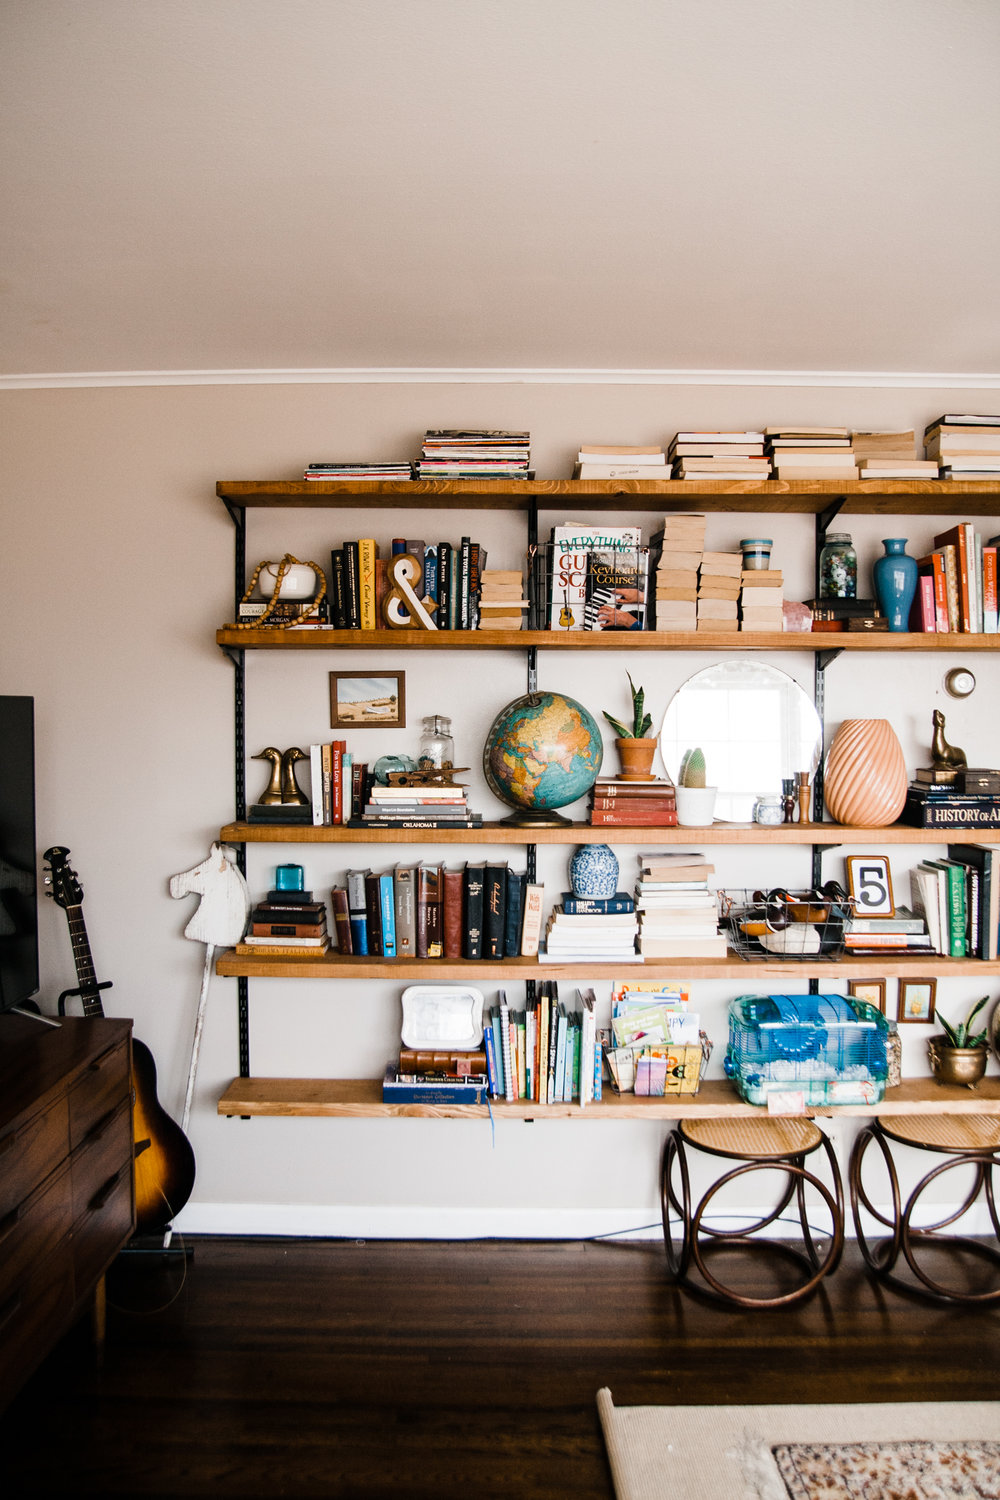 Rachel and her husband installed the open shelving in the living room themselves.